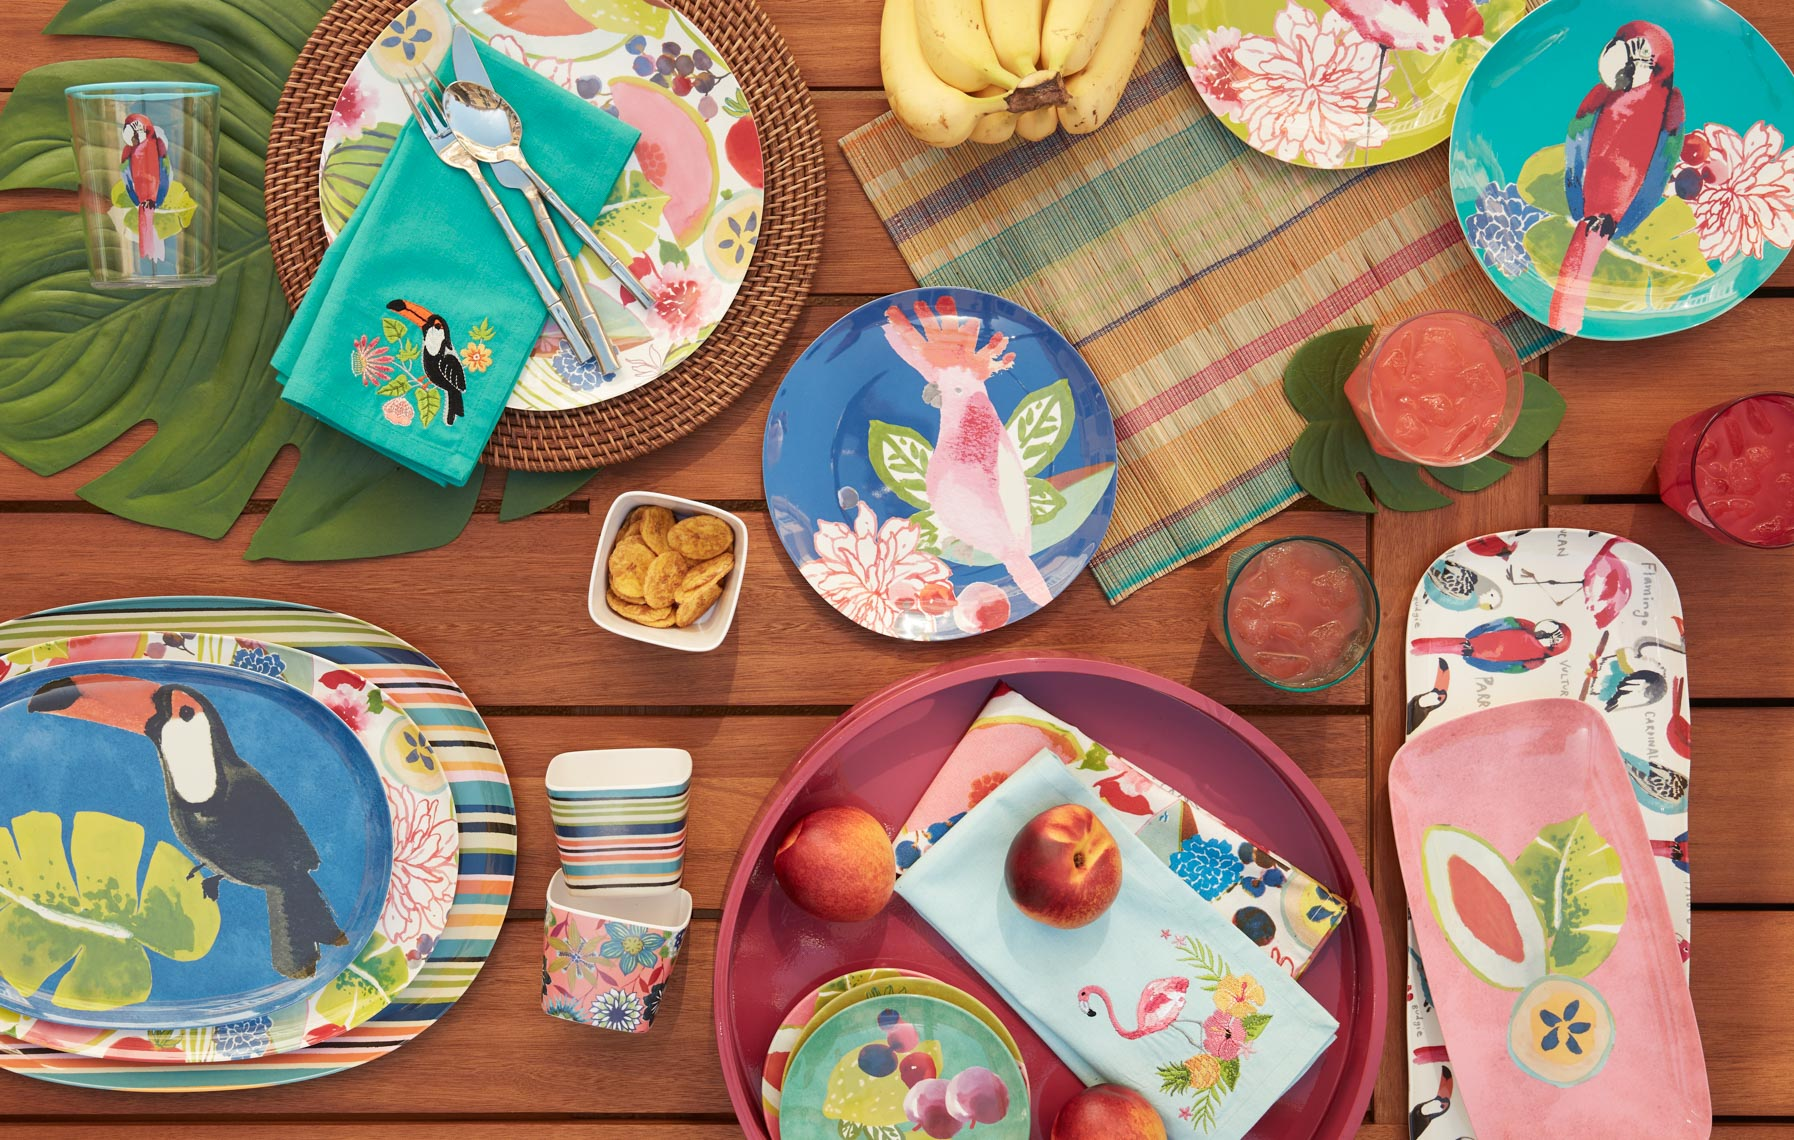 Colorful Plasitic dinnerware with fruit and placemats and artichokes on teak table